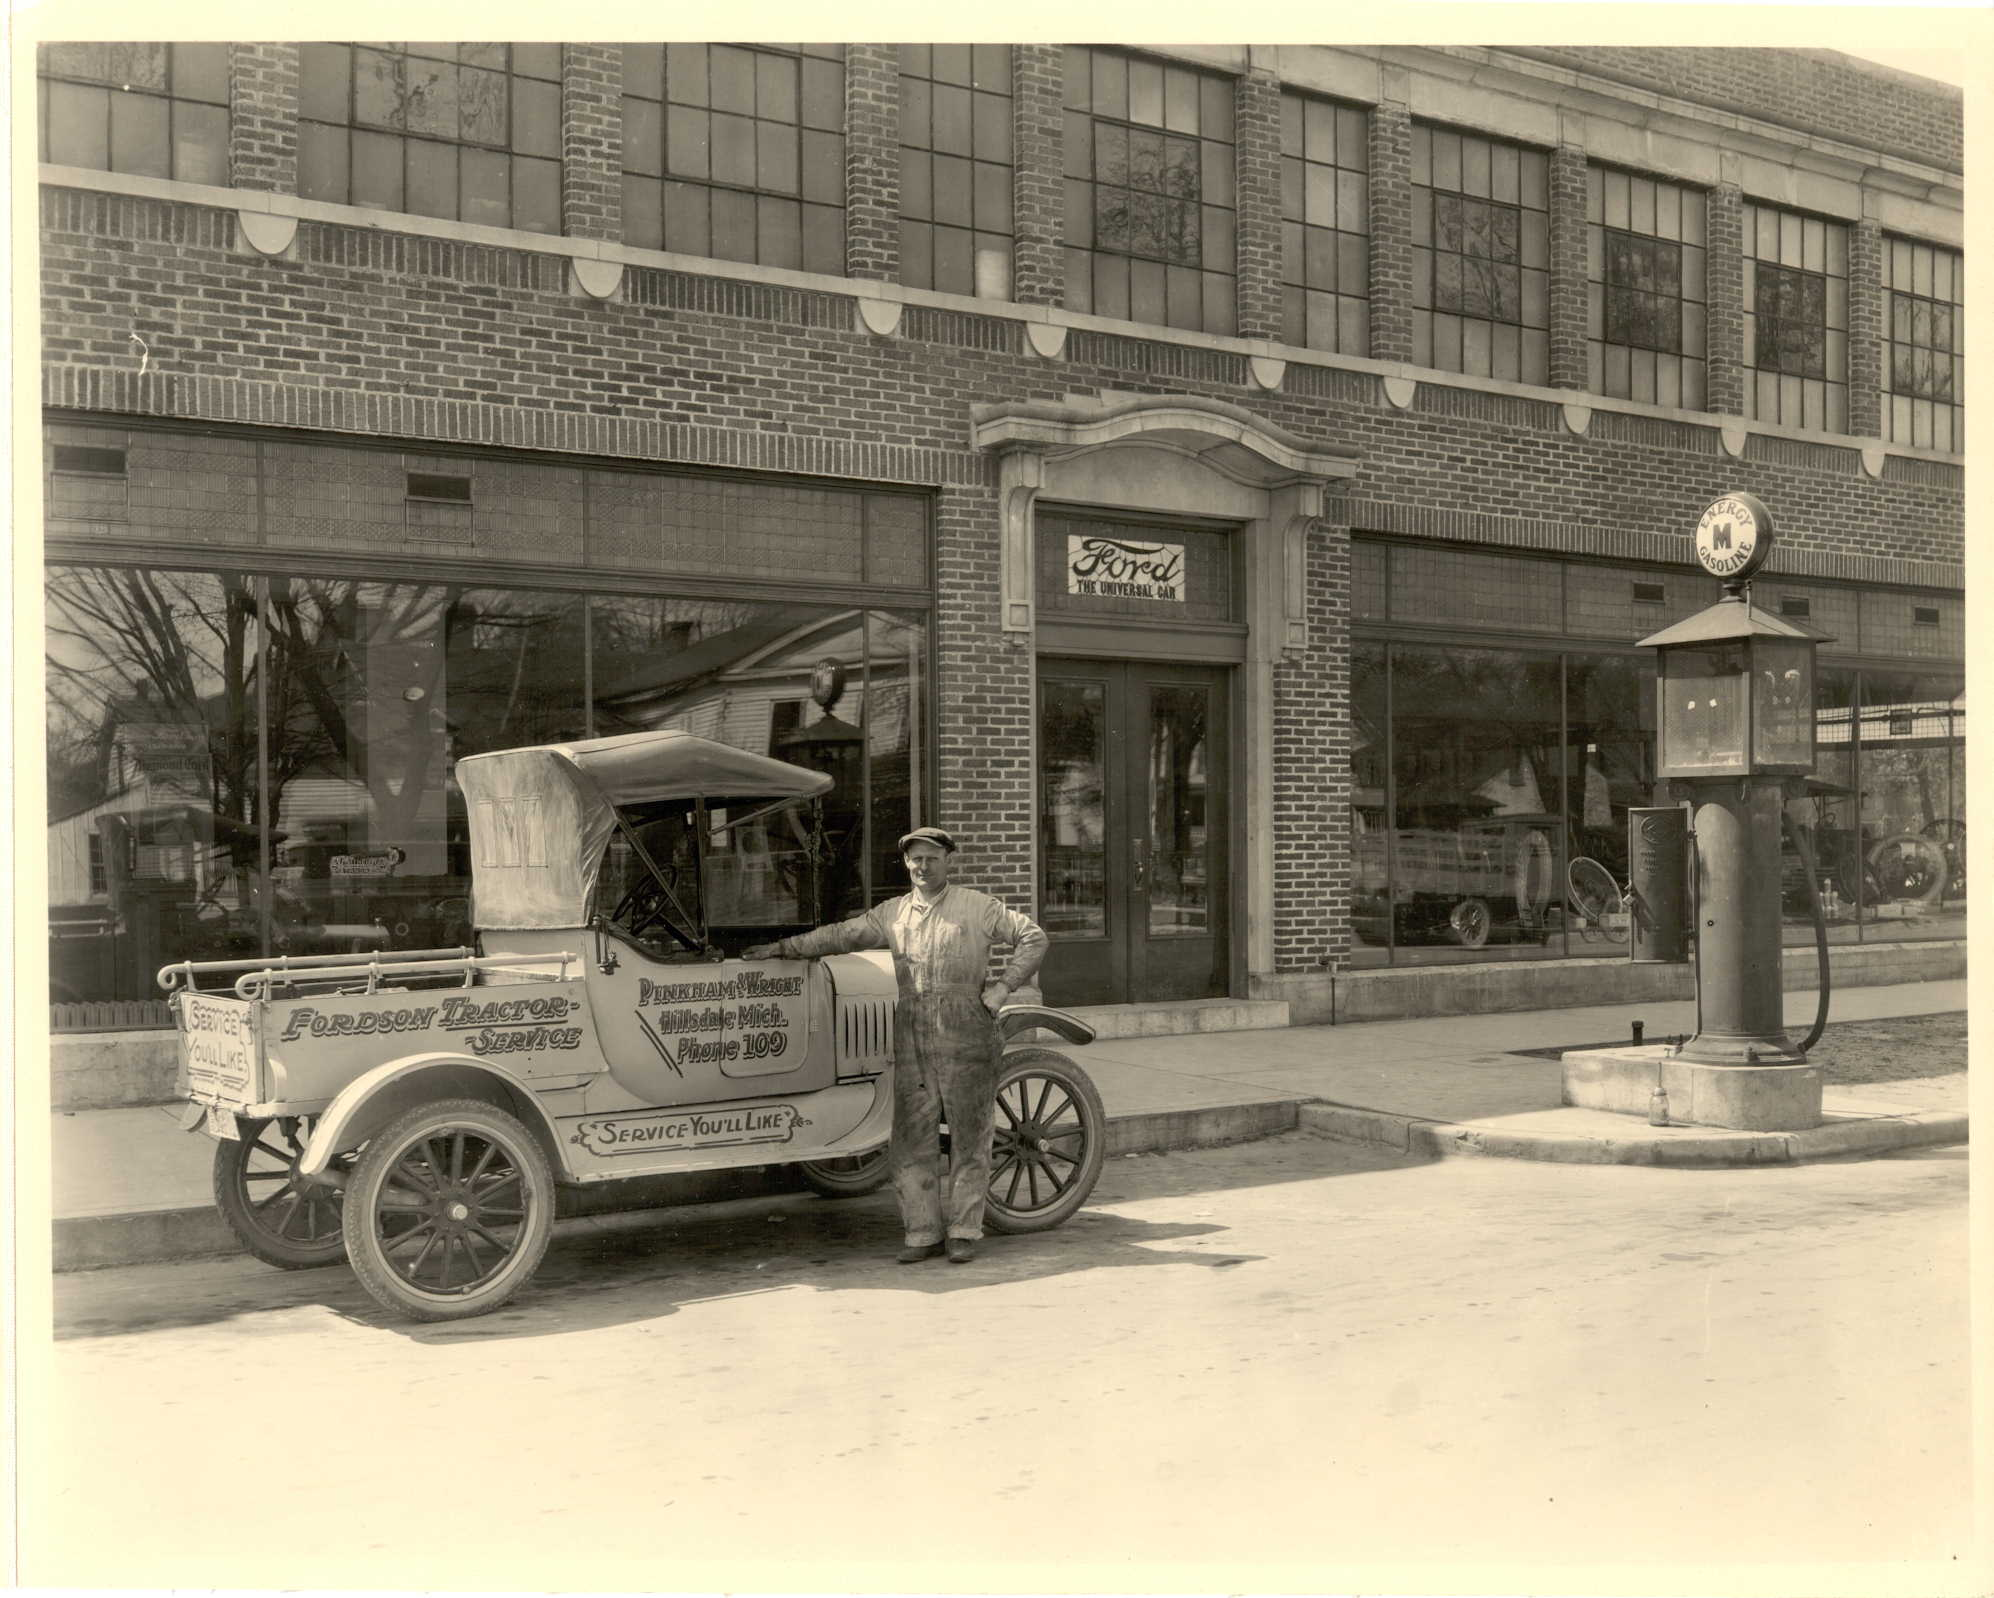 the Pinkham and wright ford dealership on Manning Streetin Hillsdale had a gas pump in front.